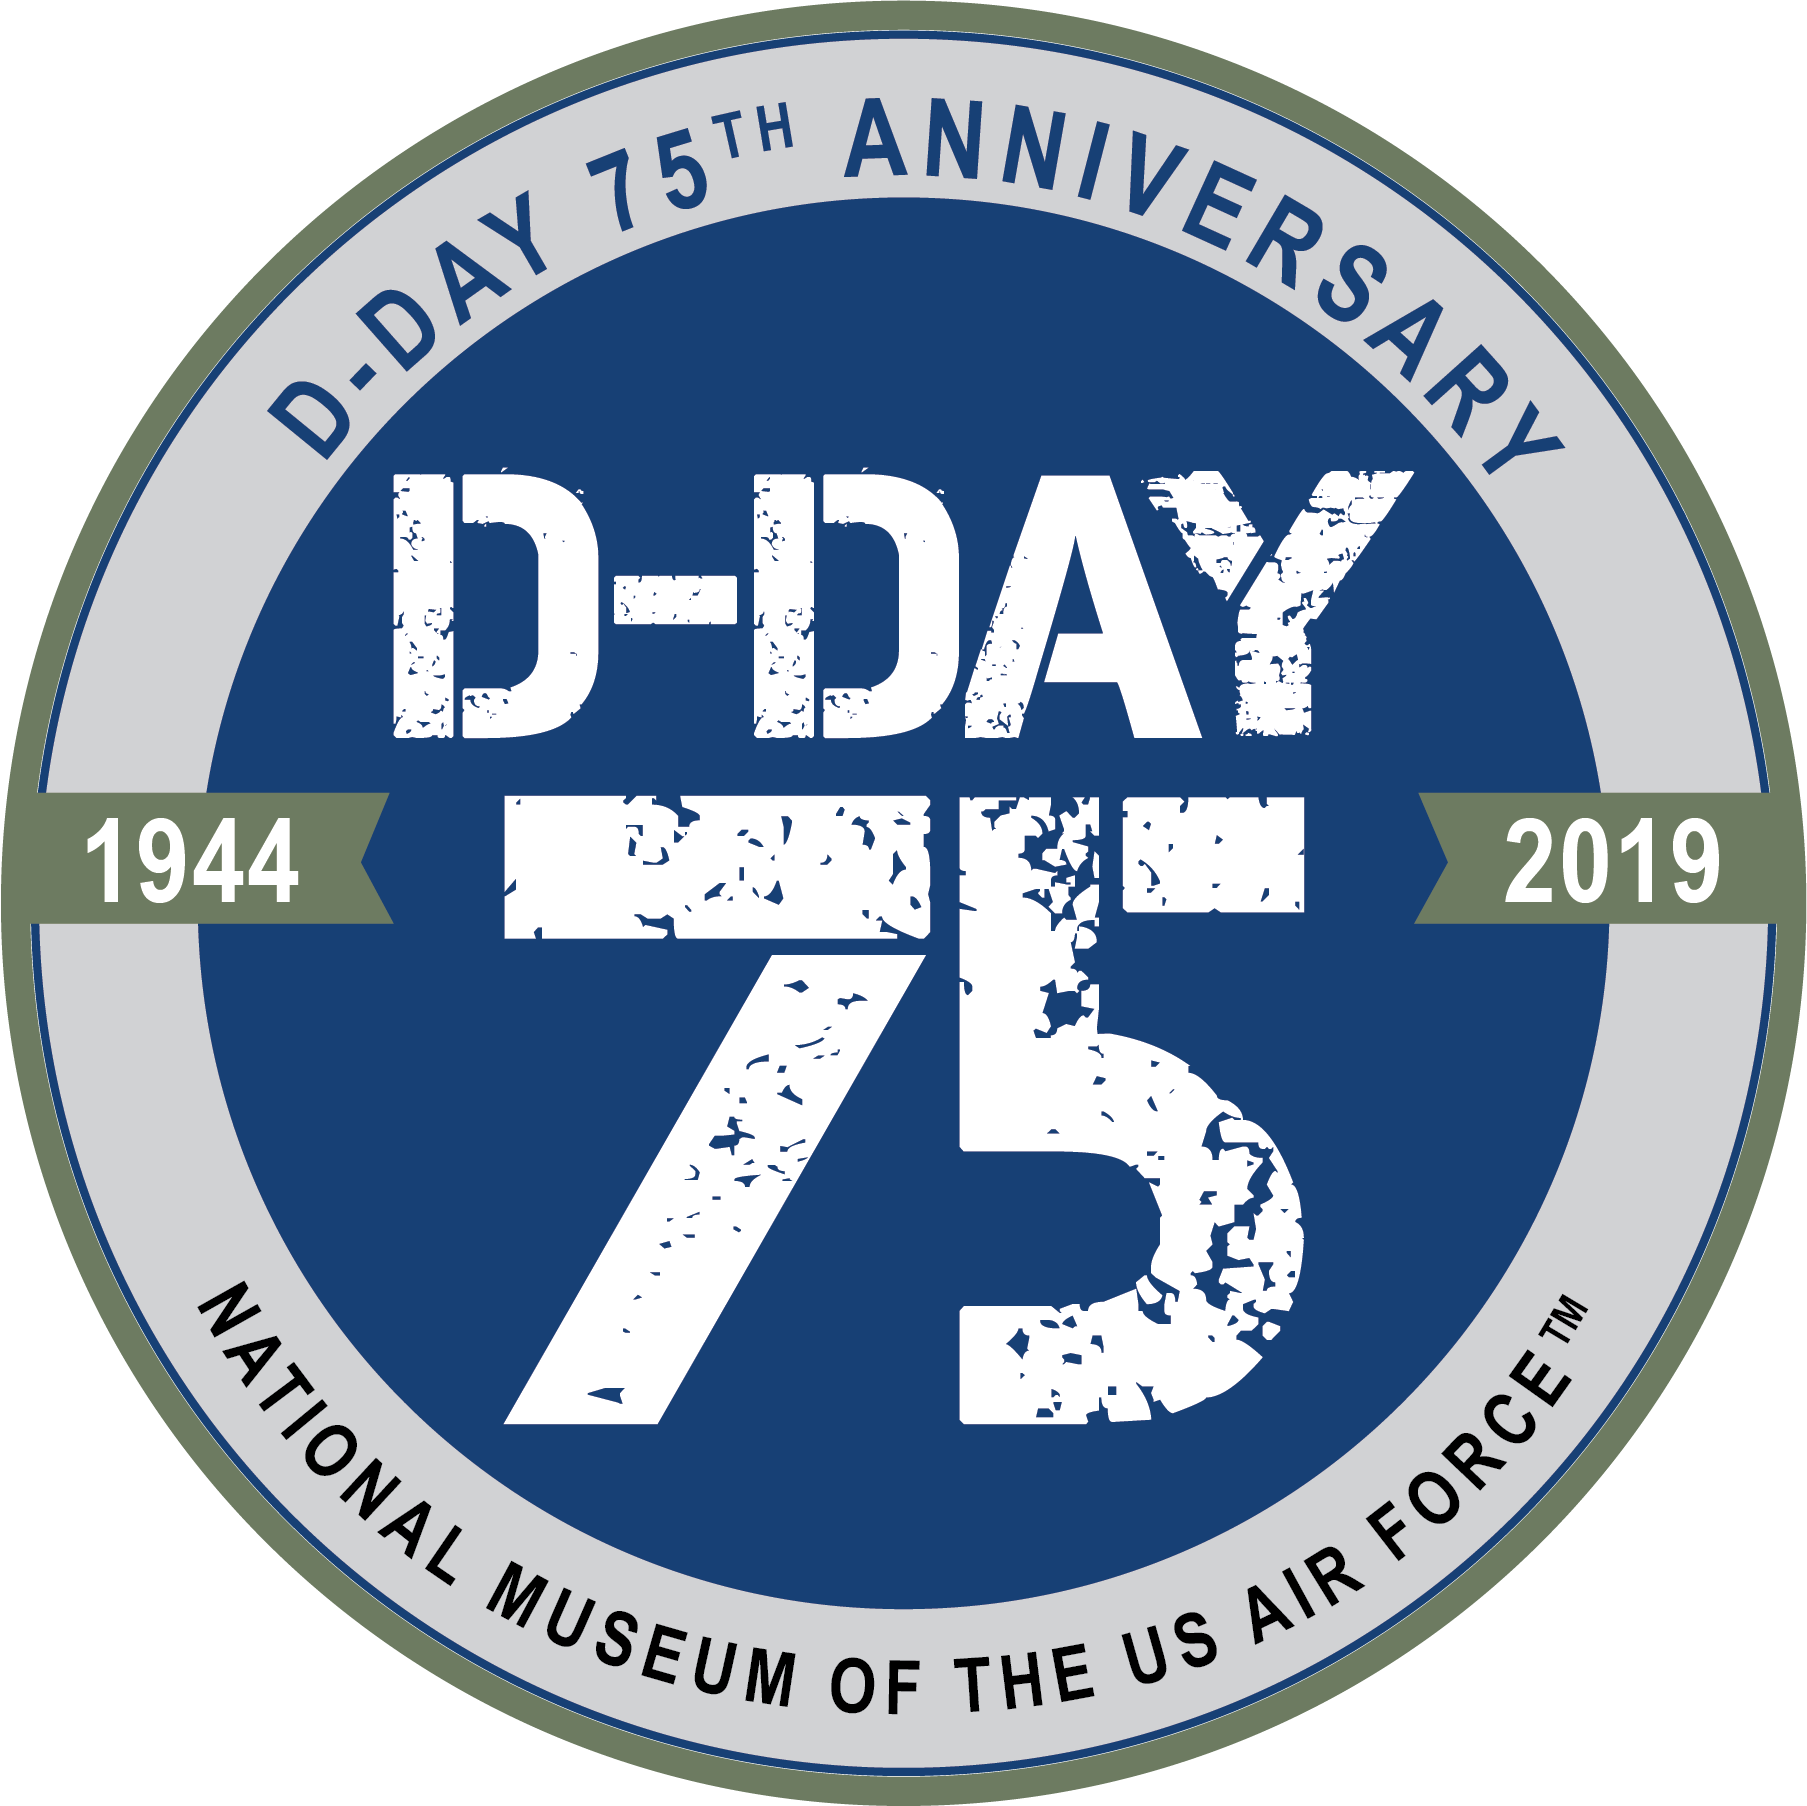 Pin On 75th Anniversary D Day June 6 1944 2019